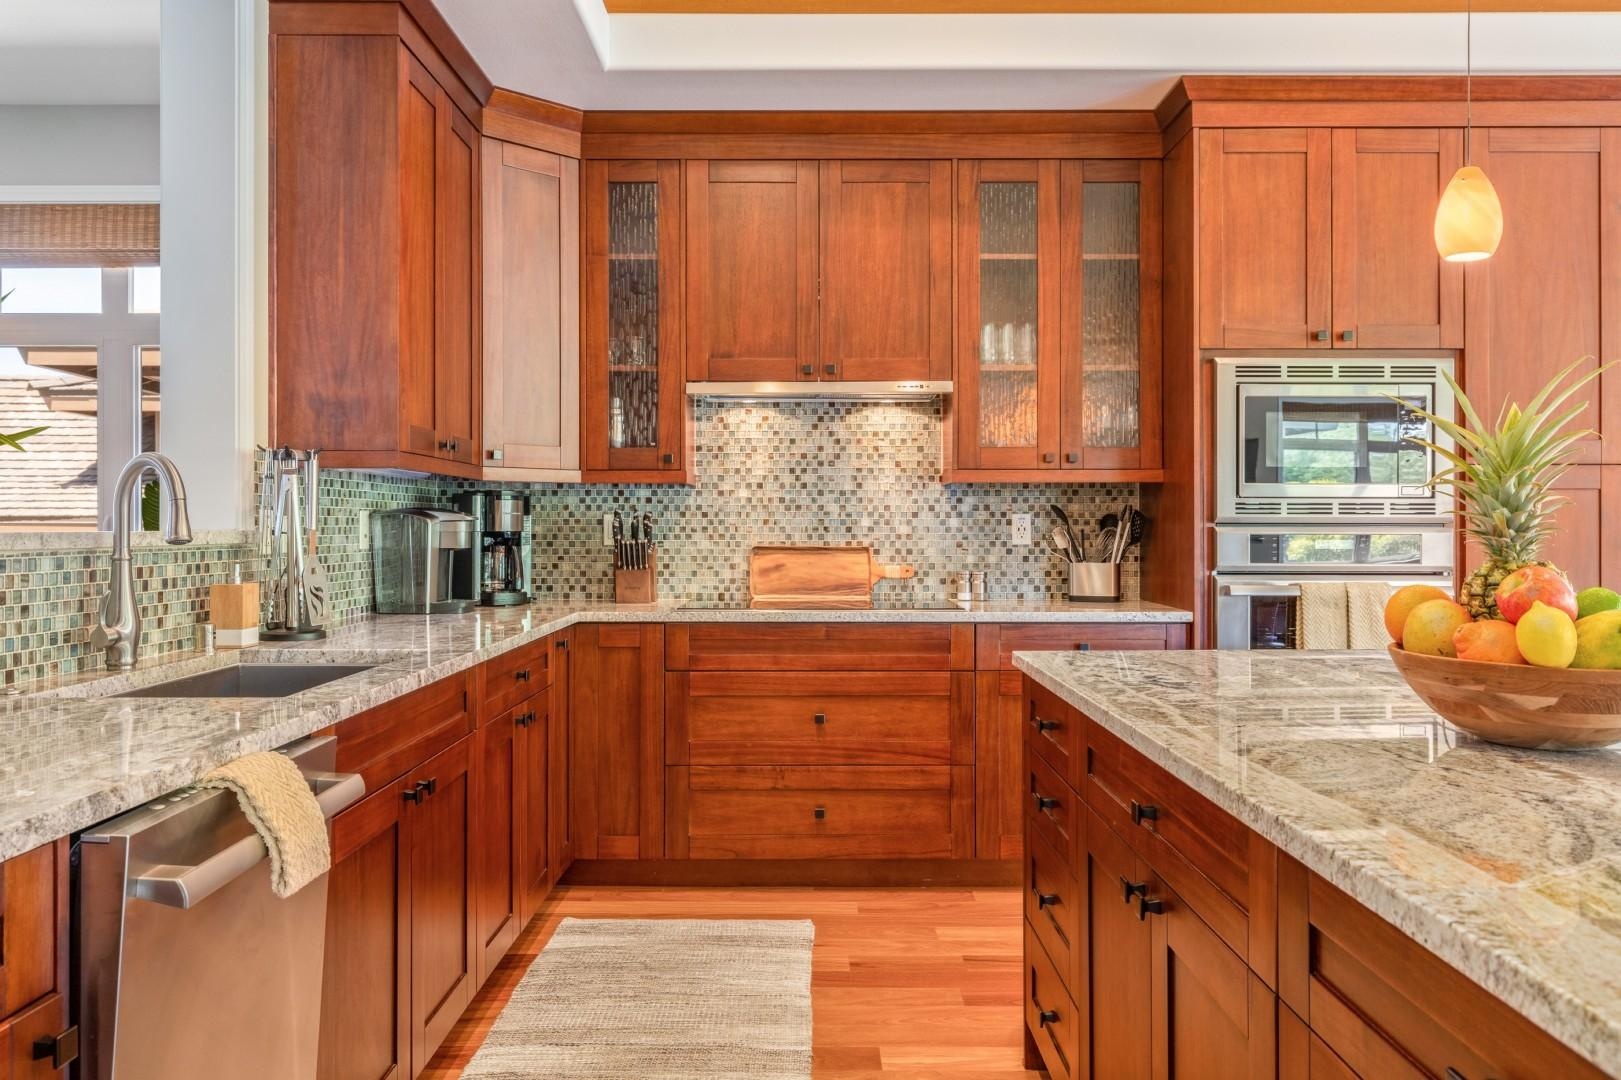 Spacious modern kitchen with large granite island/breakfast bar, granite countertops and elegant finishes.